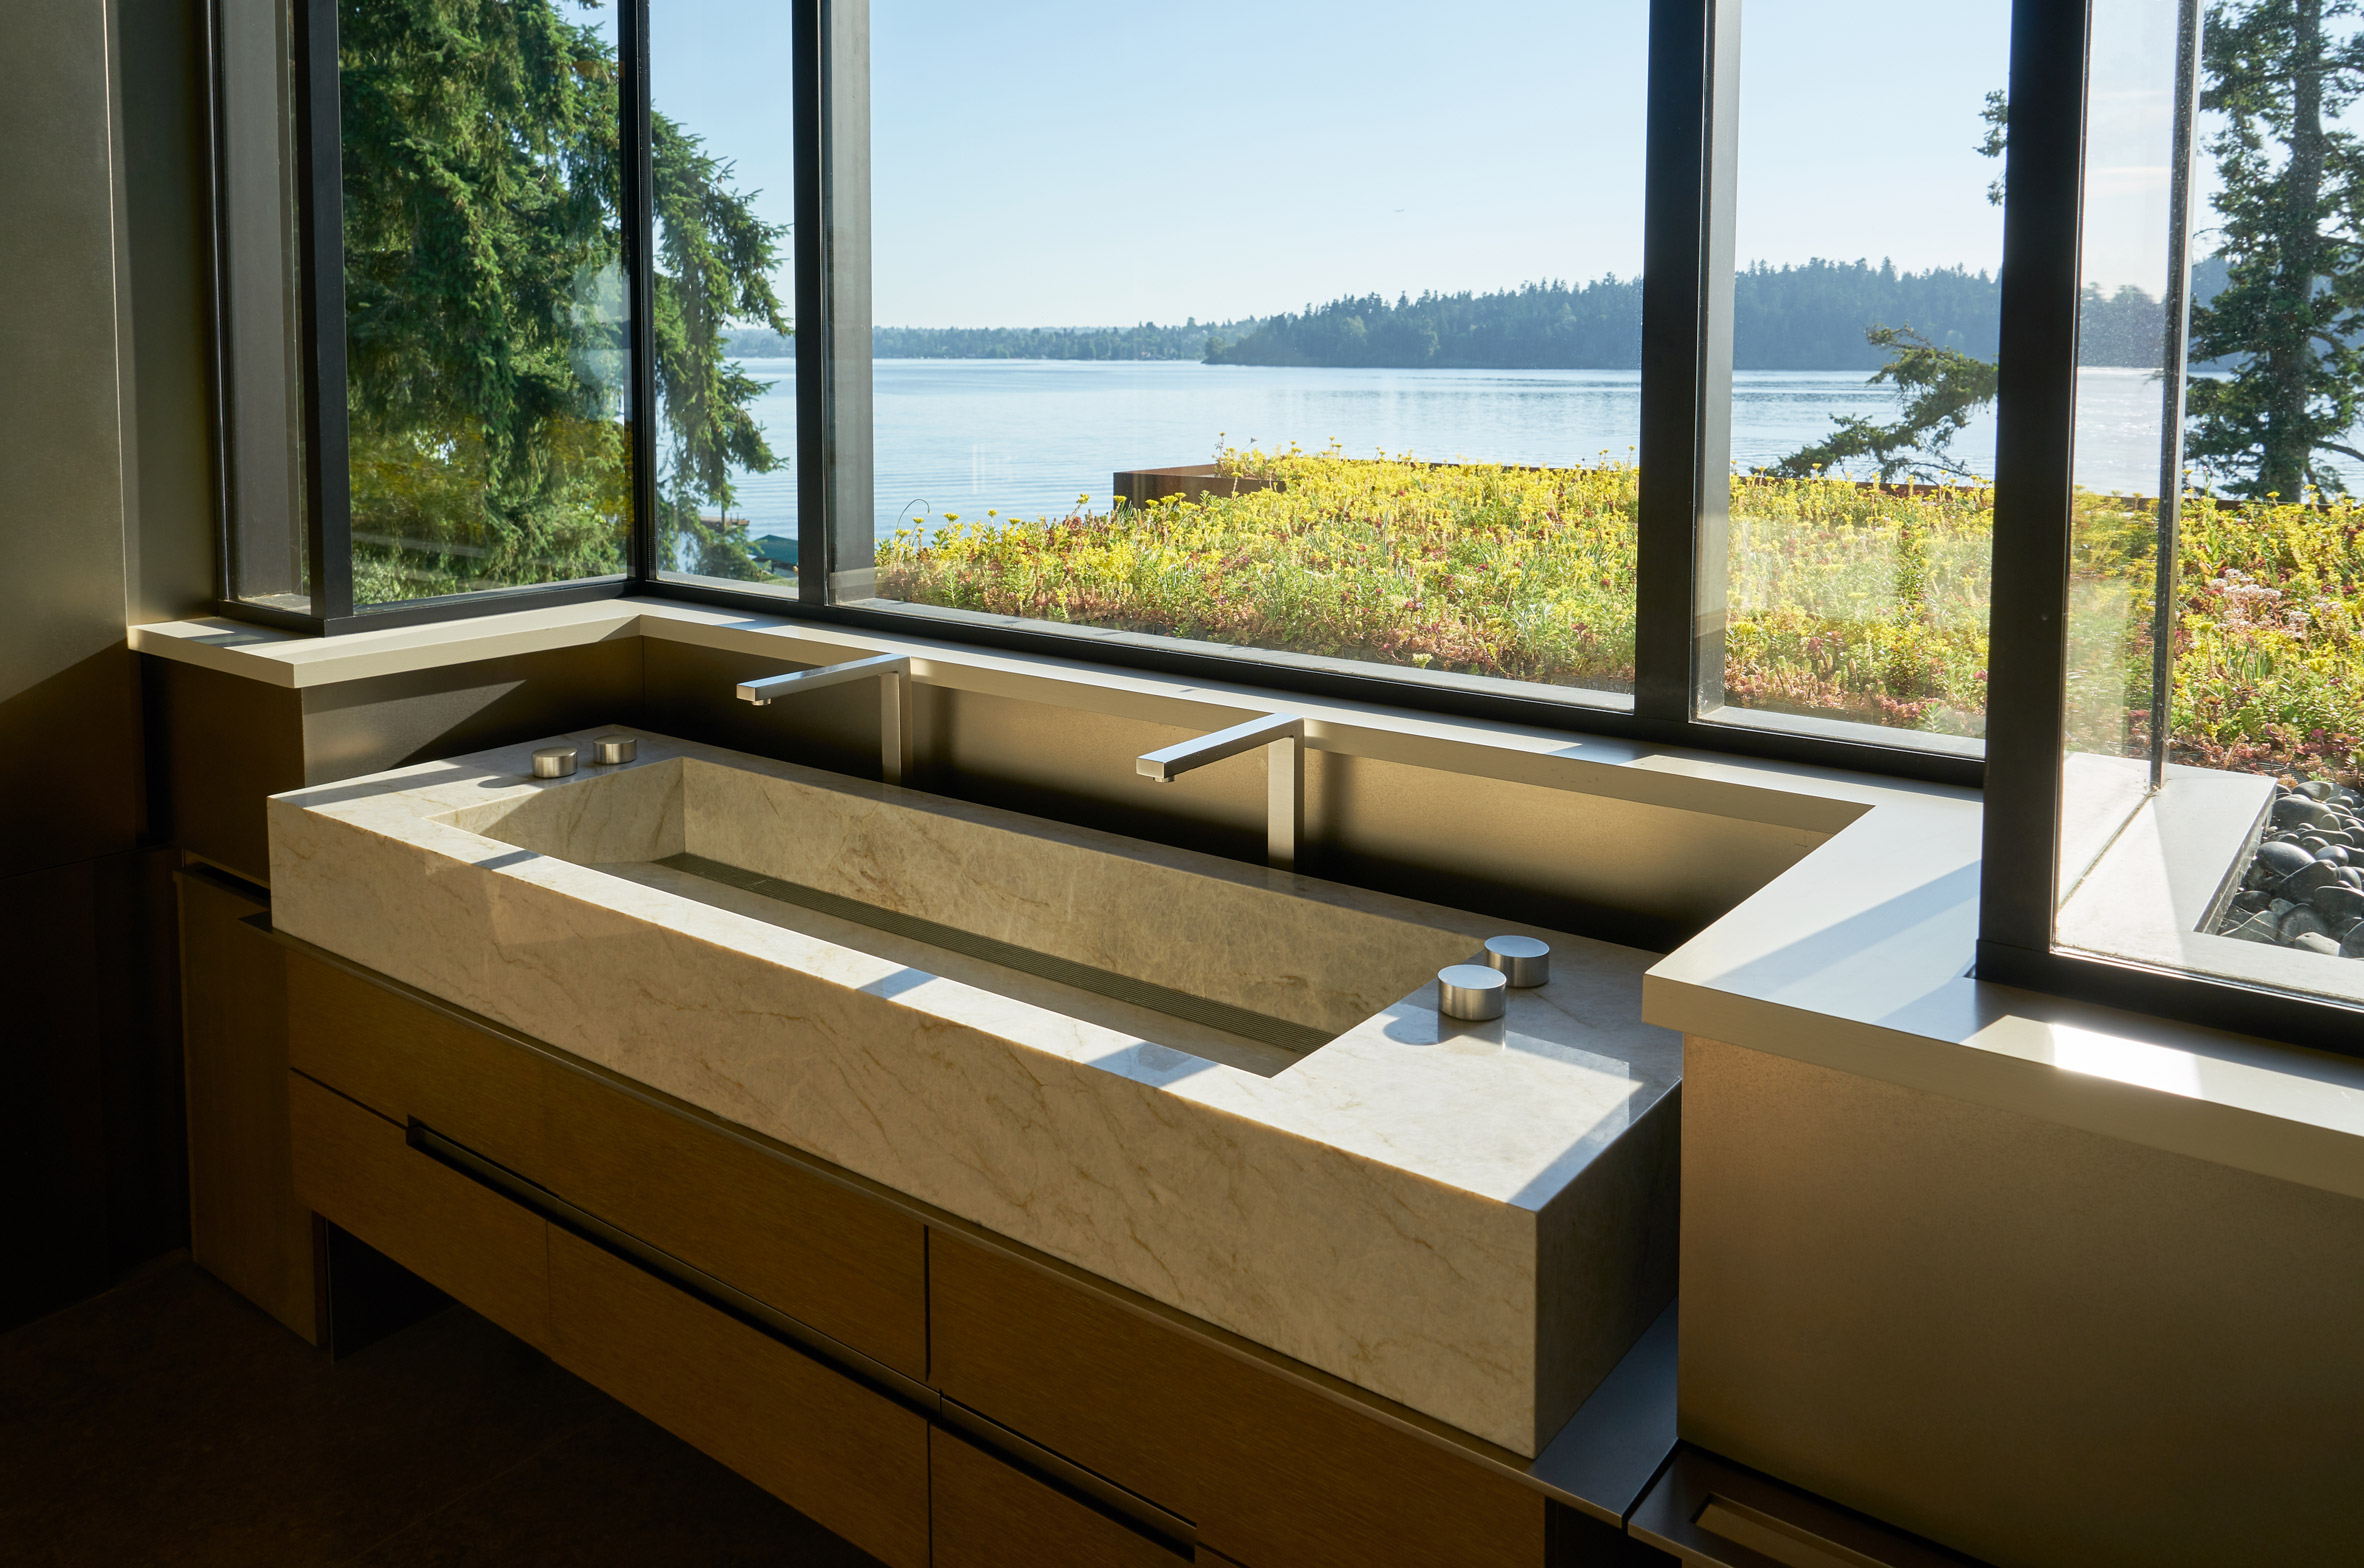 Sink has views of the lake